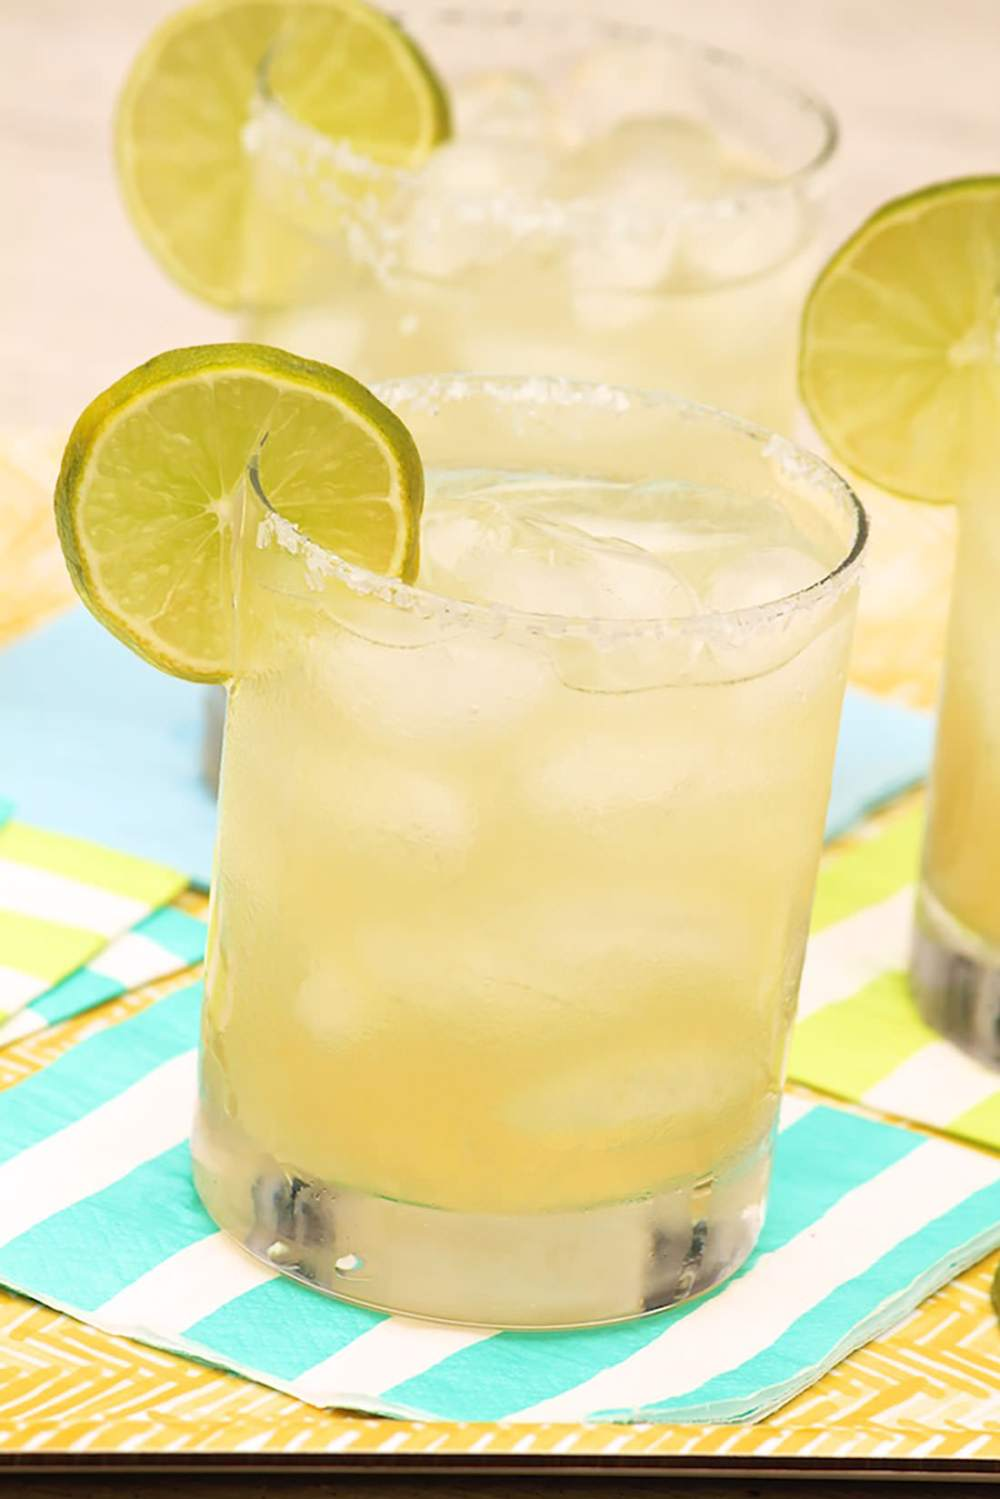 This unconventional recipe makes a large pitcherful and tastes like the best version of the classic drink. Plus, you can freeze some for later-or make a Margarita slushy!